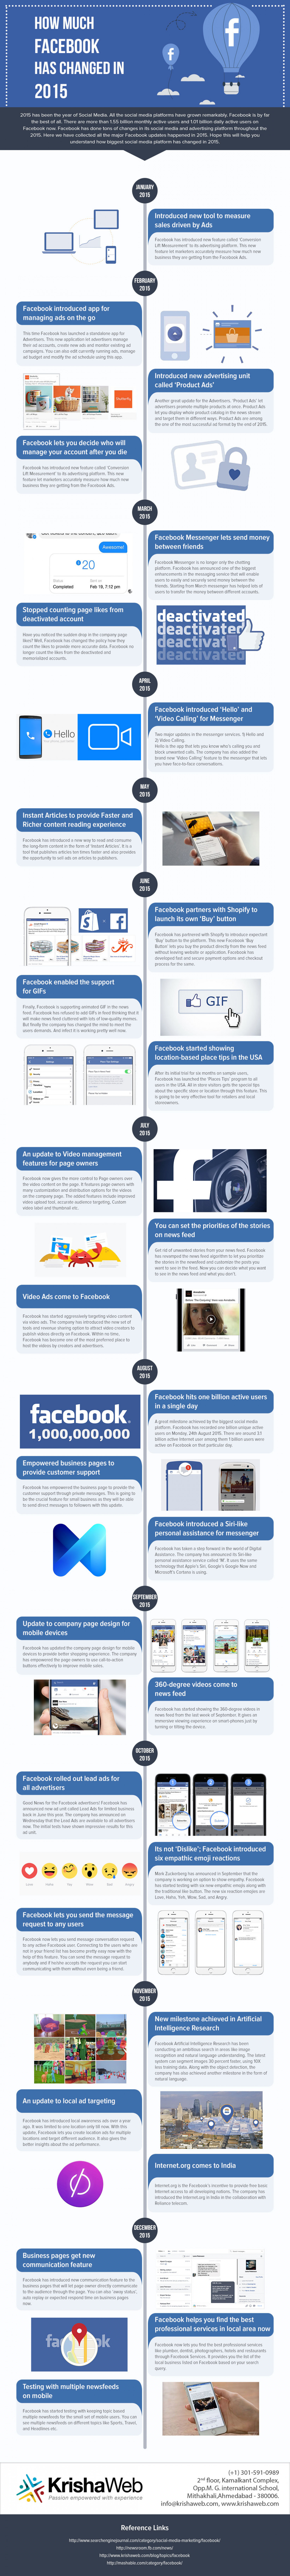 Major Facebook changes in 2015  Infographic